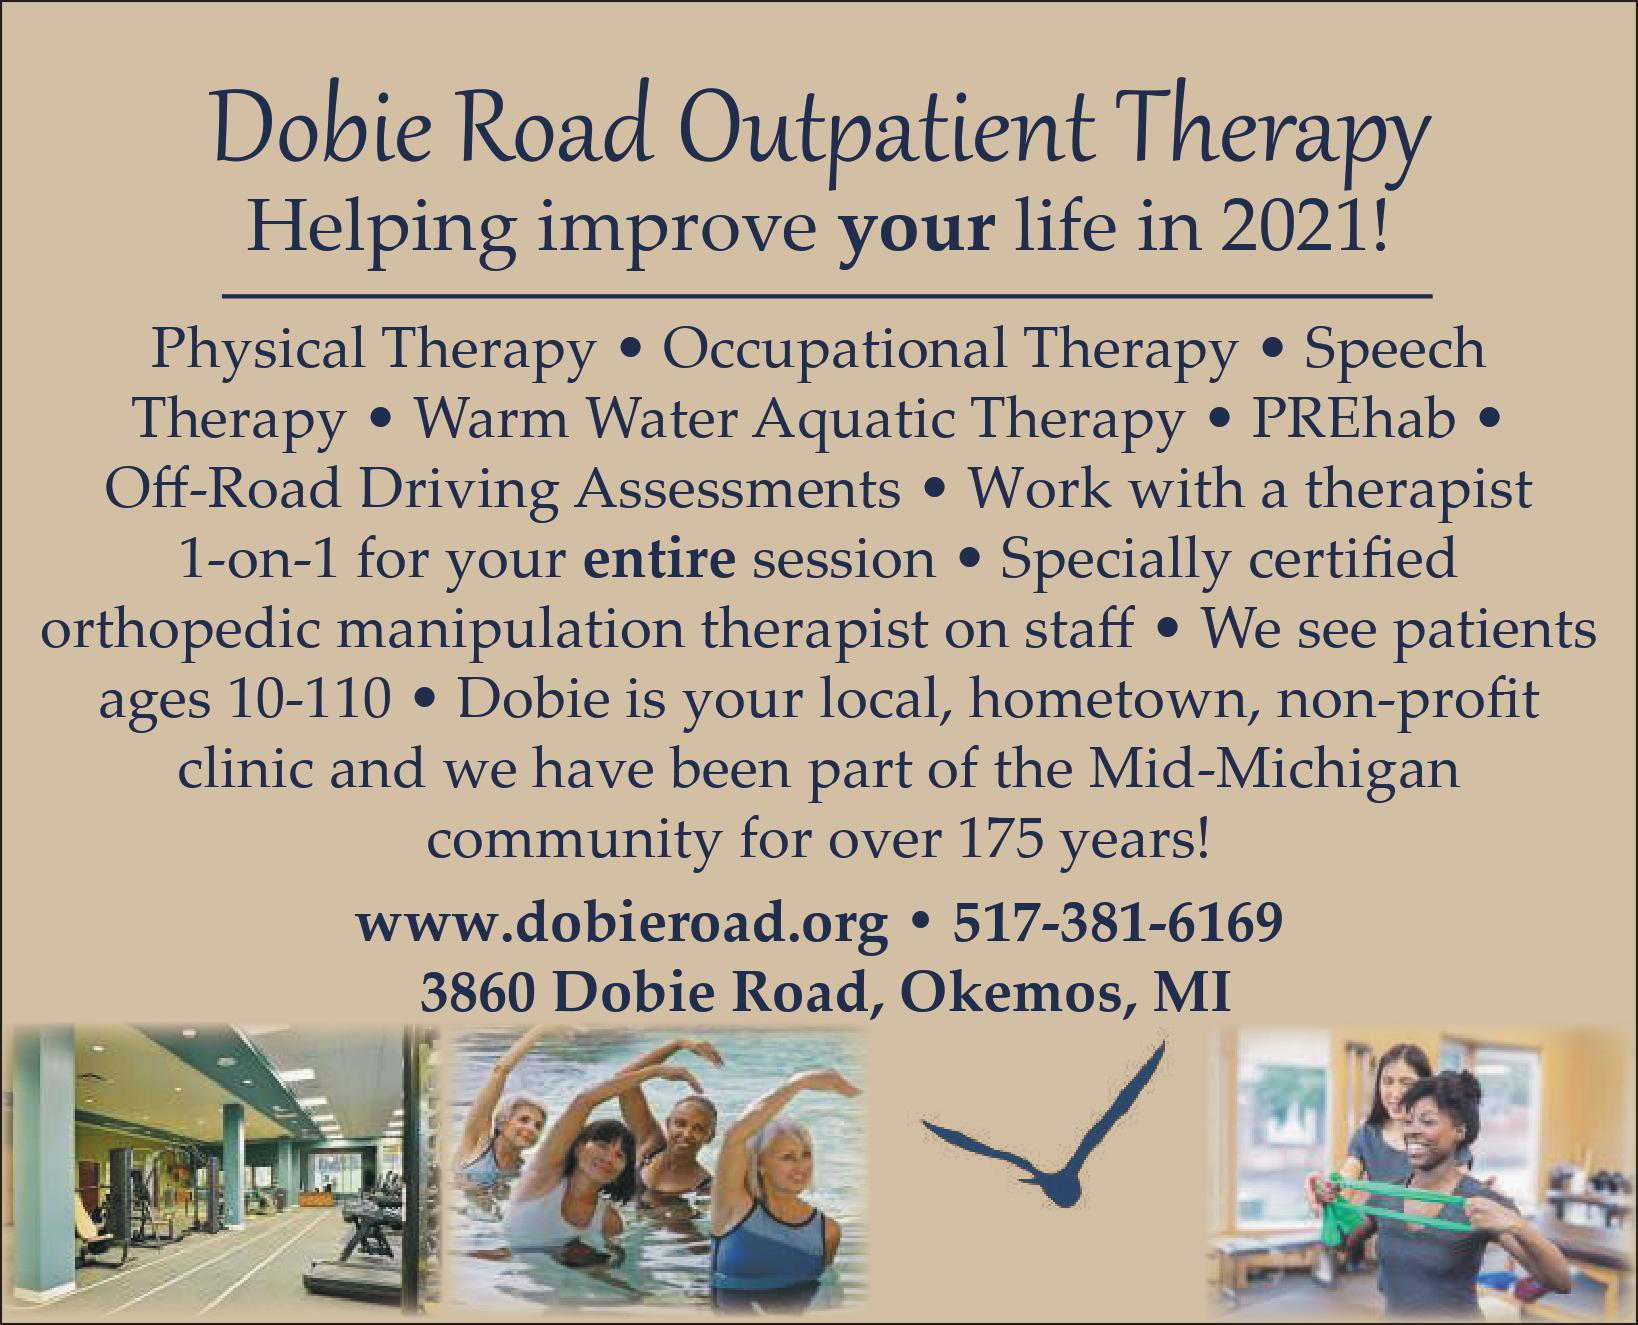 Dobie's Outpatient Therapy Clinic